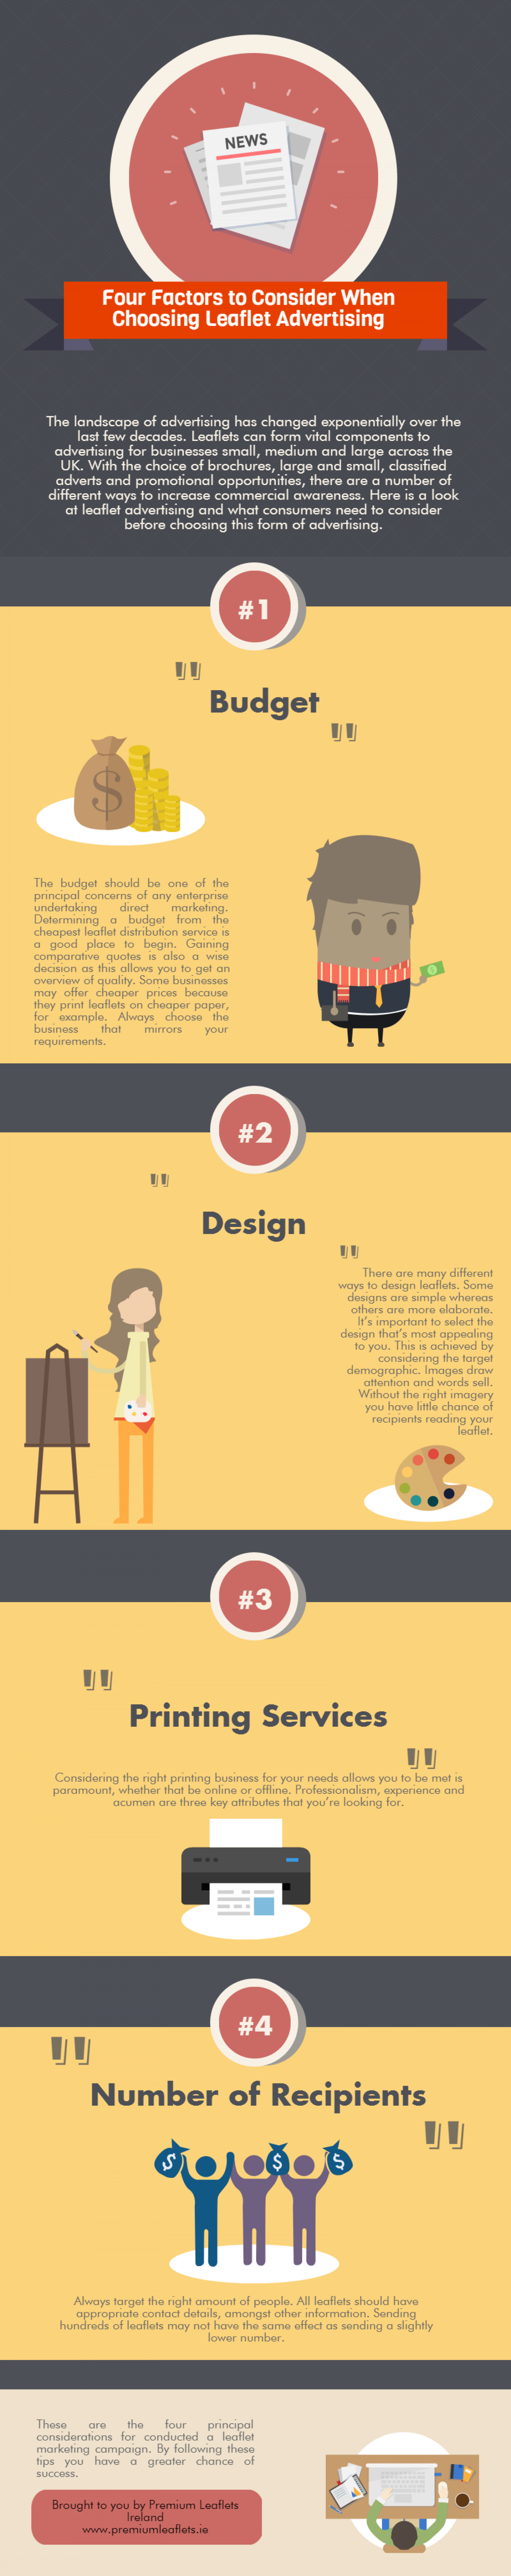 Print advertising infographic